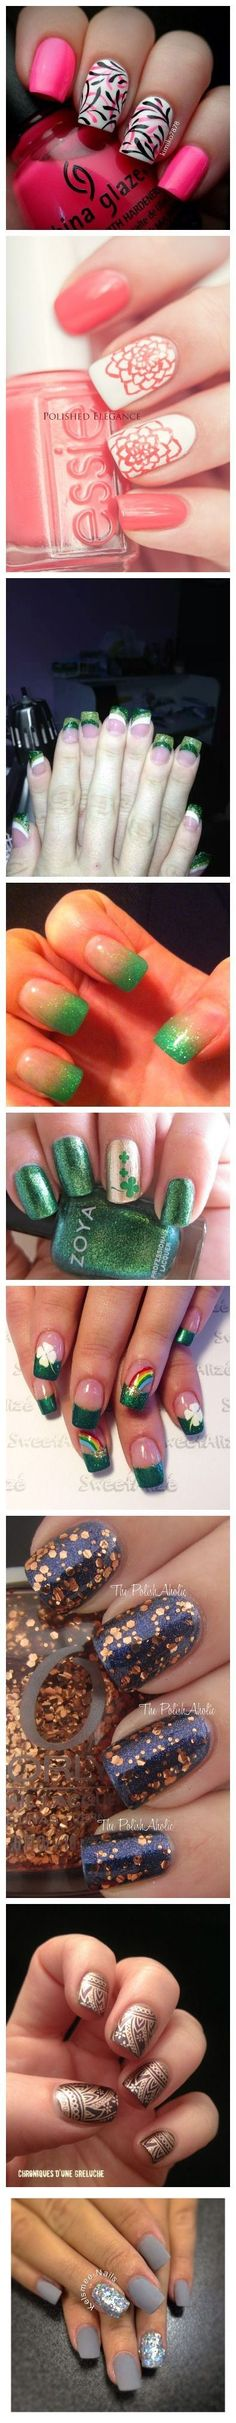 Nail Art Ideas and Designs The key to positive body image go to slimmingbodyshape. for plus size shapewear and bras Nail Art Diy, Easy Nail Art, Diy Nails, Fabulous Nails, Gorgeous Nails, Pretty Nails, Fancy Nails, Love Nails, Do It Yourself Nails